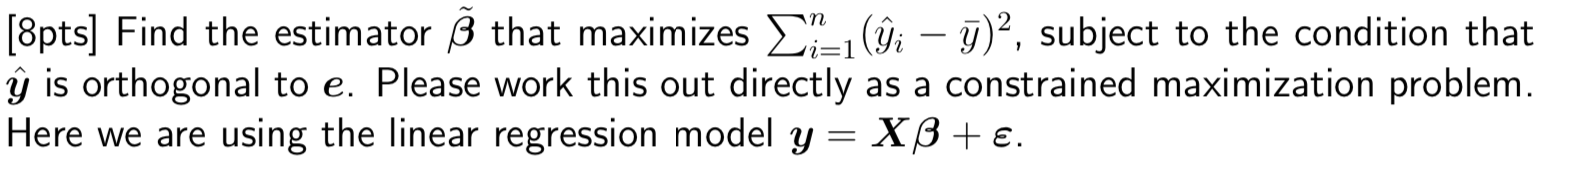 [8pts) Find the estimator B that maximizes 21_, (ĝi – y)2, subject to the condition that ŷ is orthogonal to e. Please work th